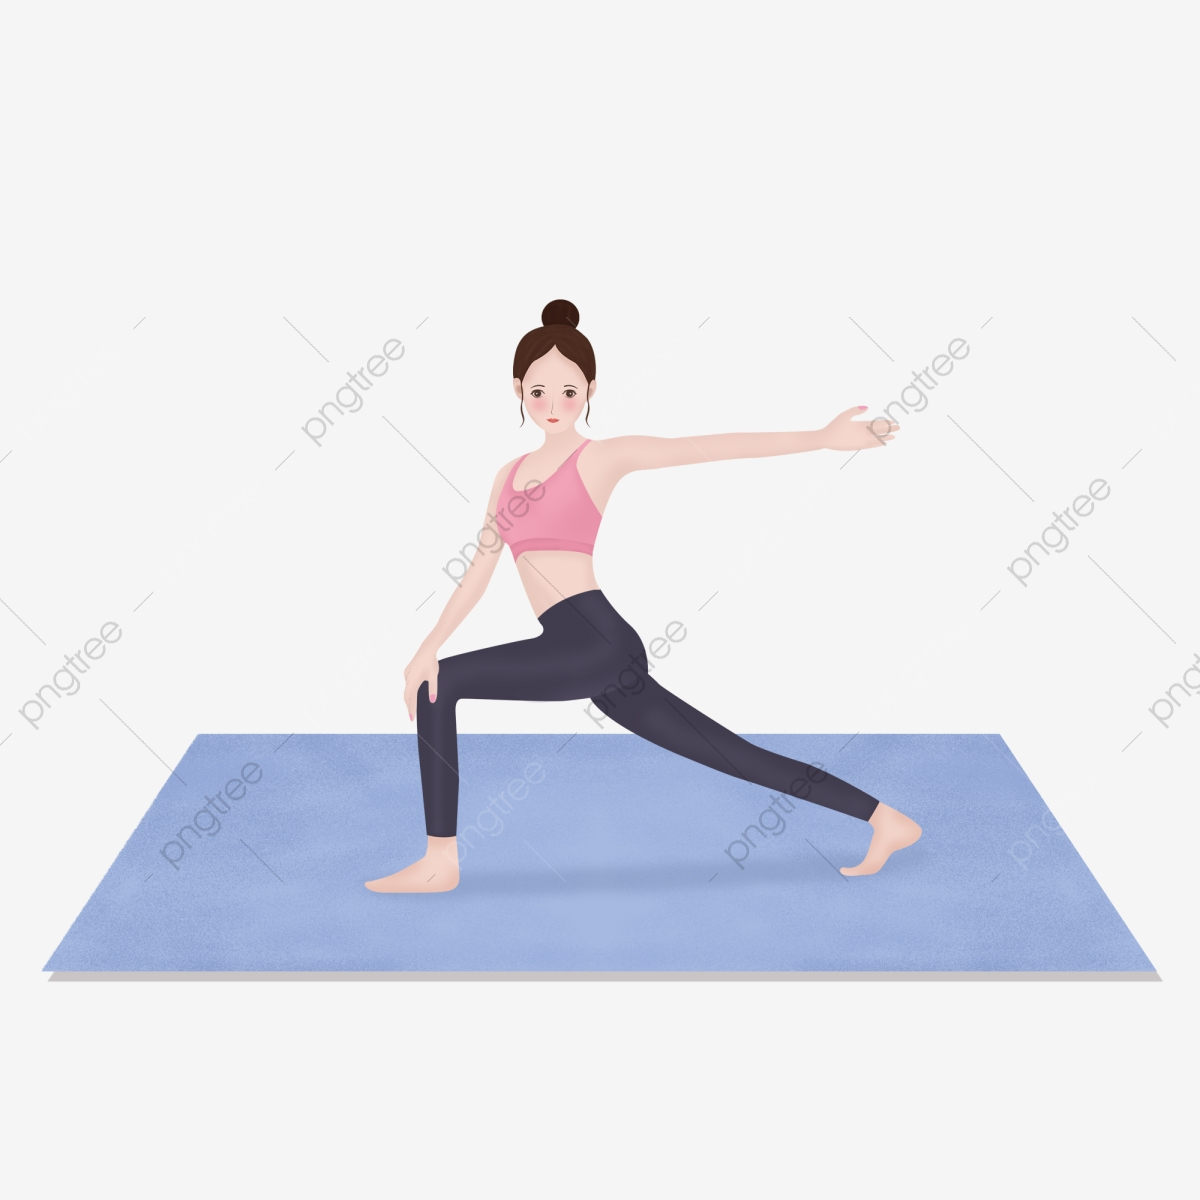 Girl Doing Yoga Exercise Illustration Material Yoga Day Motion Yoga Fitness Png Transparent Image And Clipart For Free Download